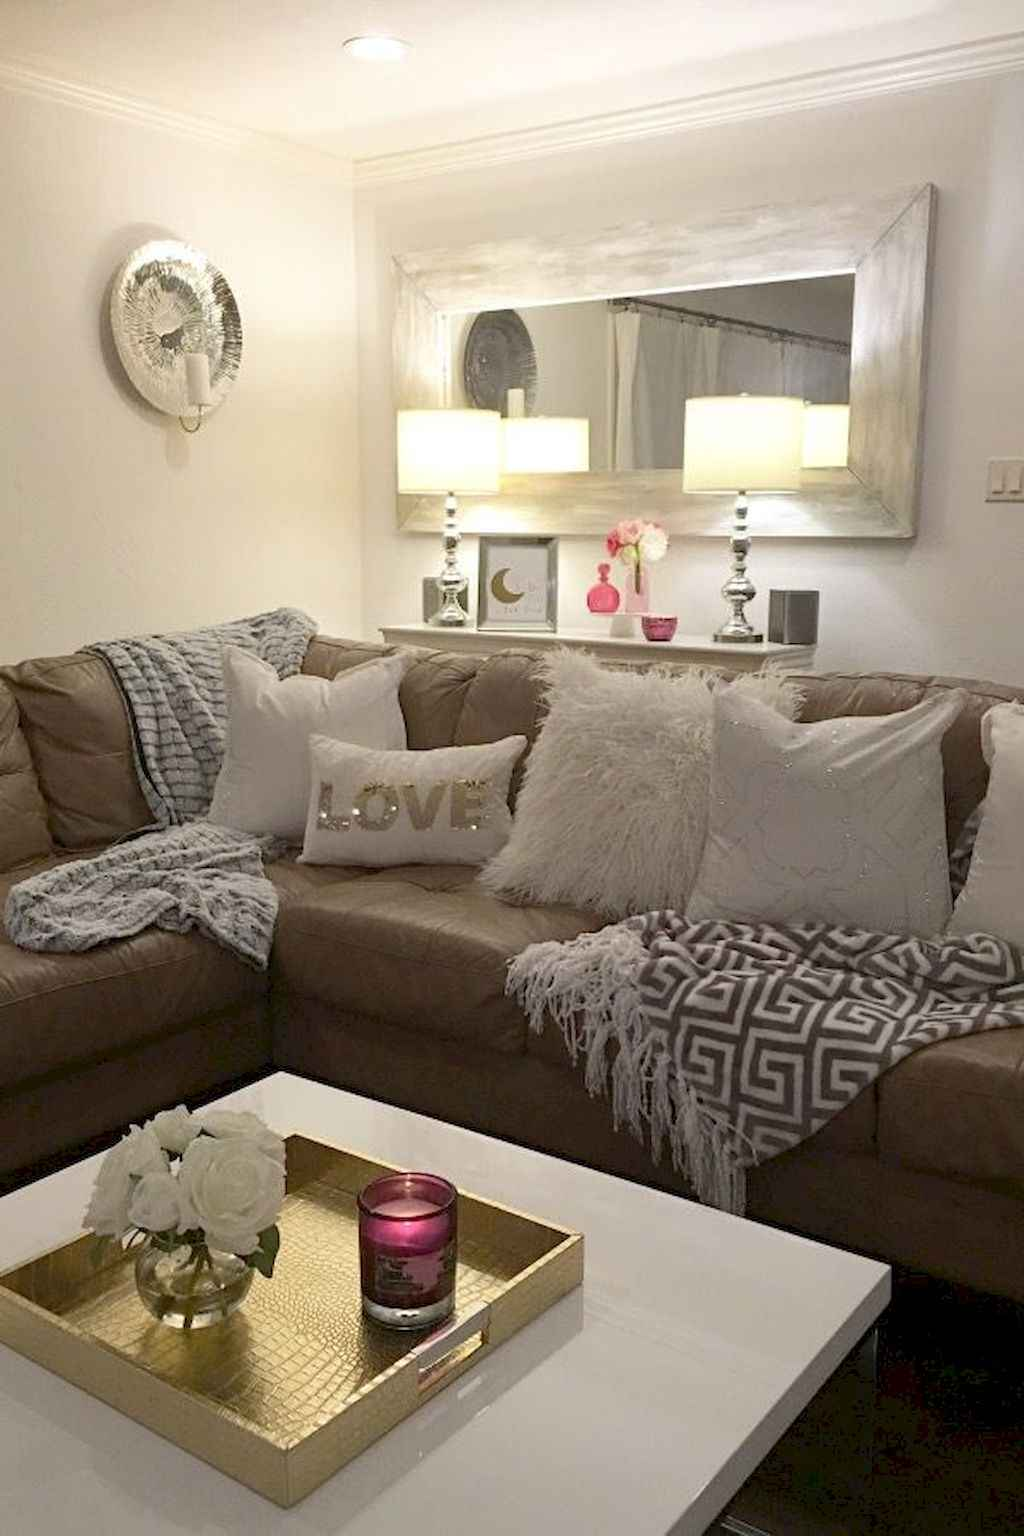 Clever college apartment decorating ideas on a budget (43)